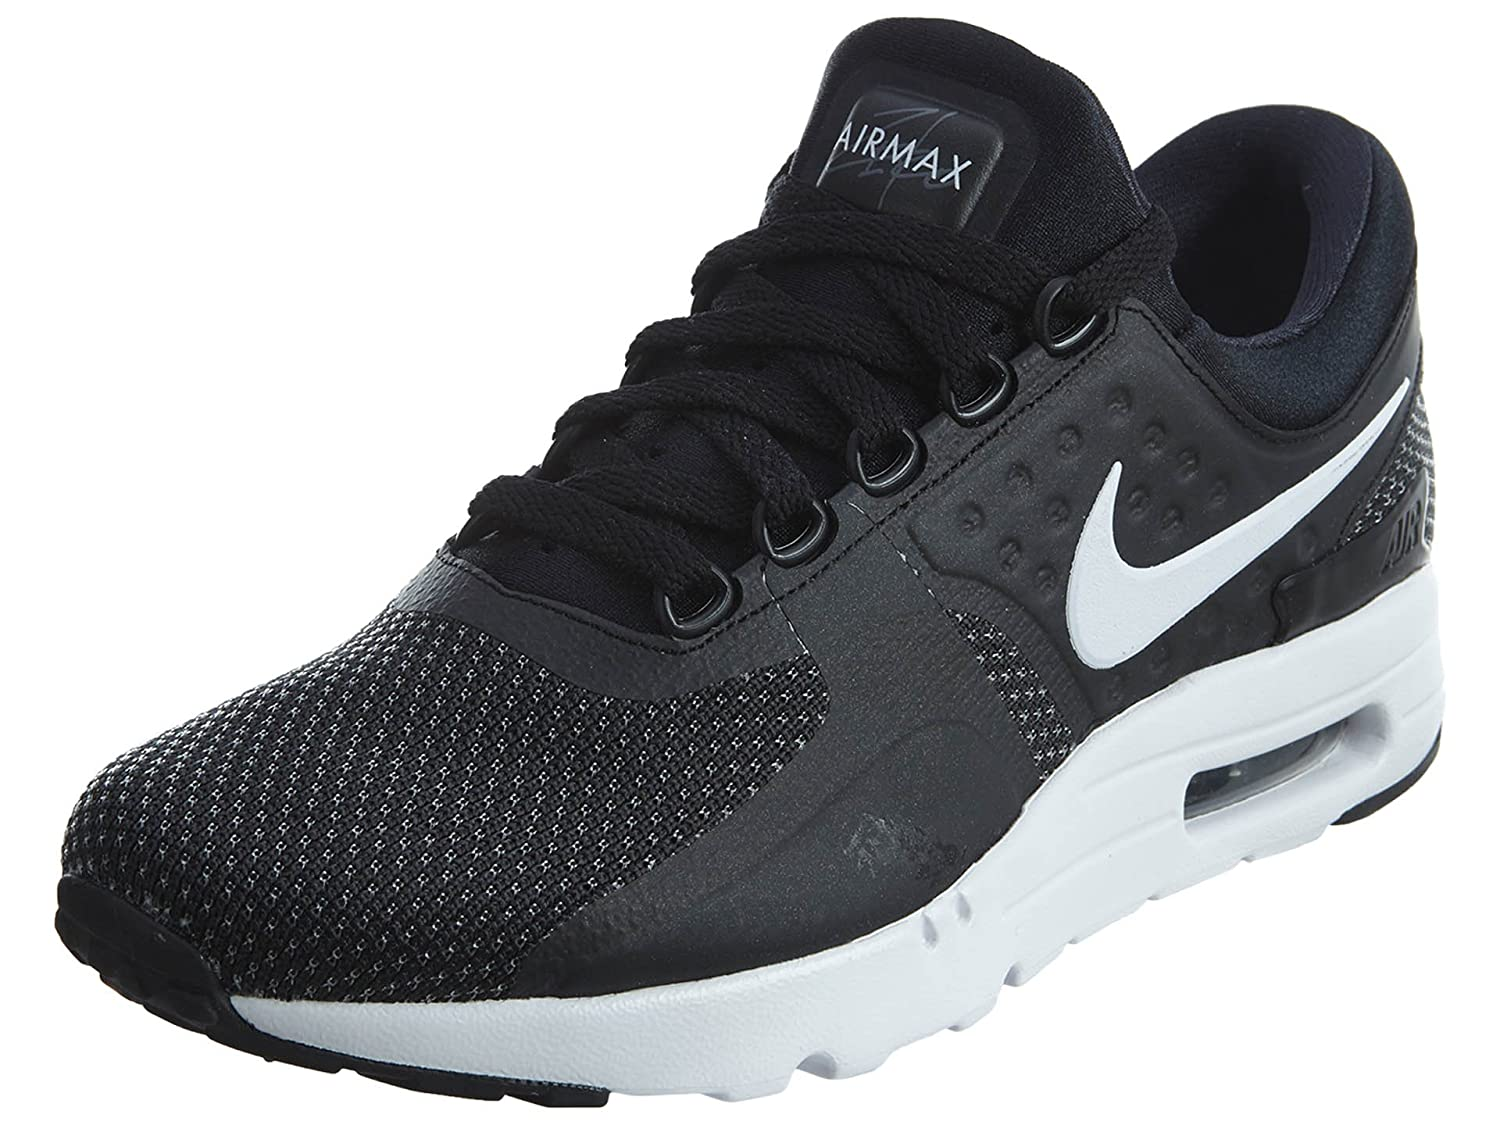 3ee31831c547 Nike Men s Air Max Zero Essential Black White Dark Grey Running Shoe 9. 5  Men US  Buy Online at Low Prices in India - Amazon.in